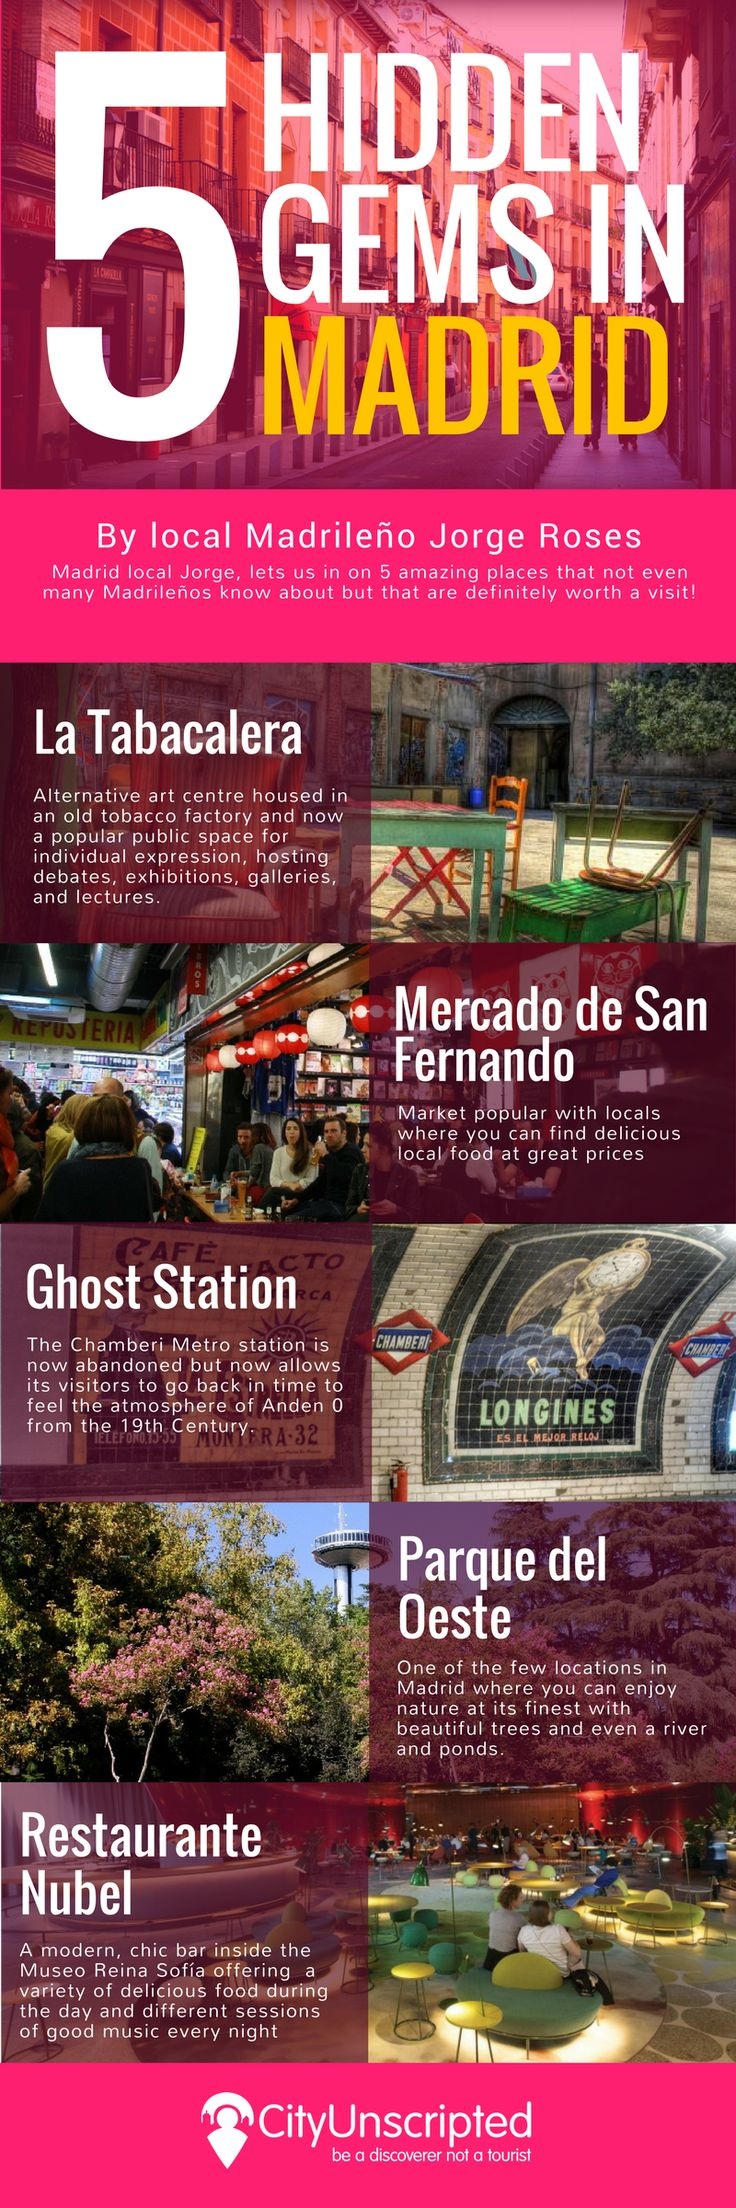 5 amazing hidden gems in Madrid recommended by Madrileño Jorge